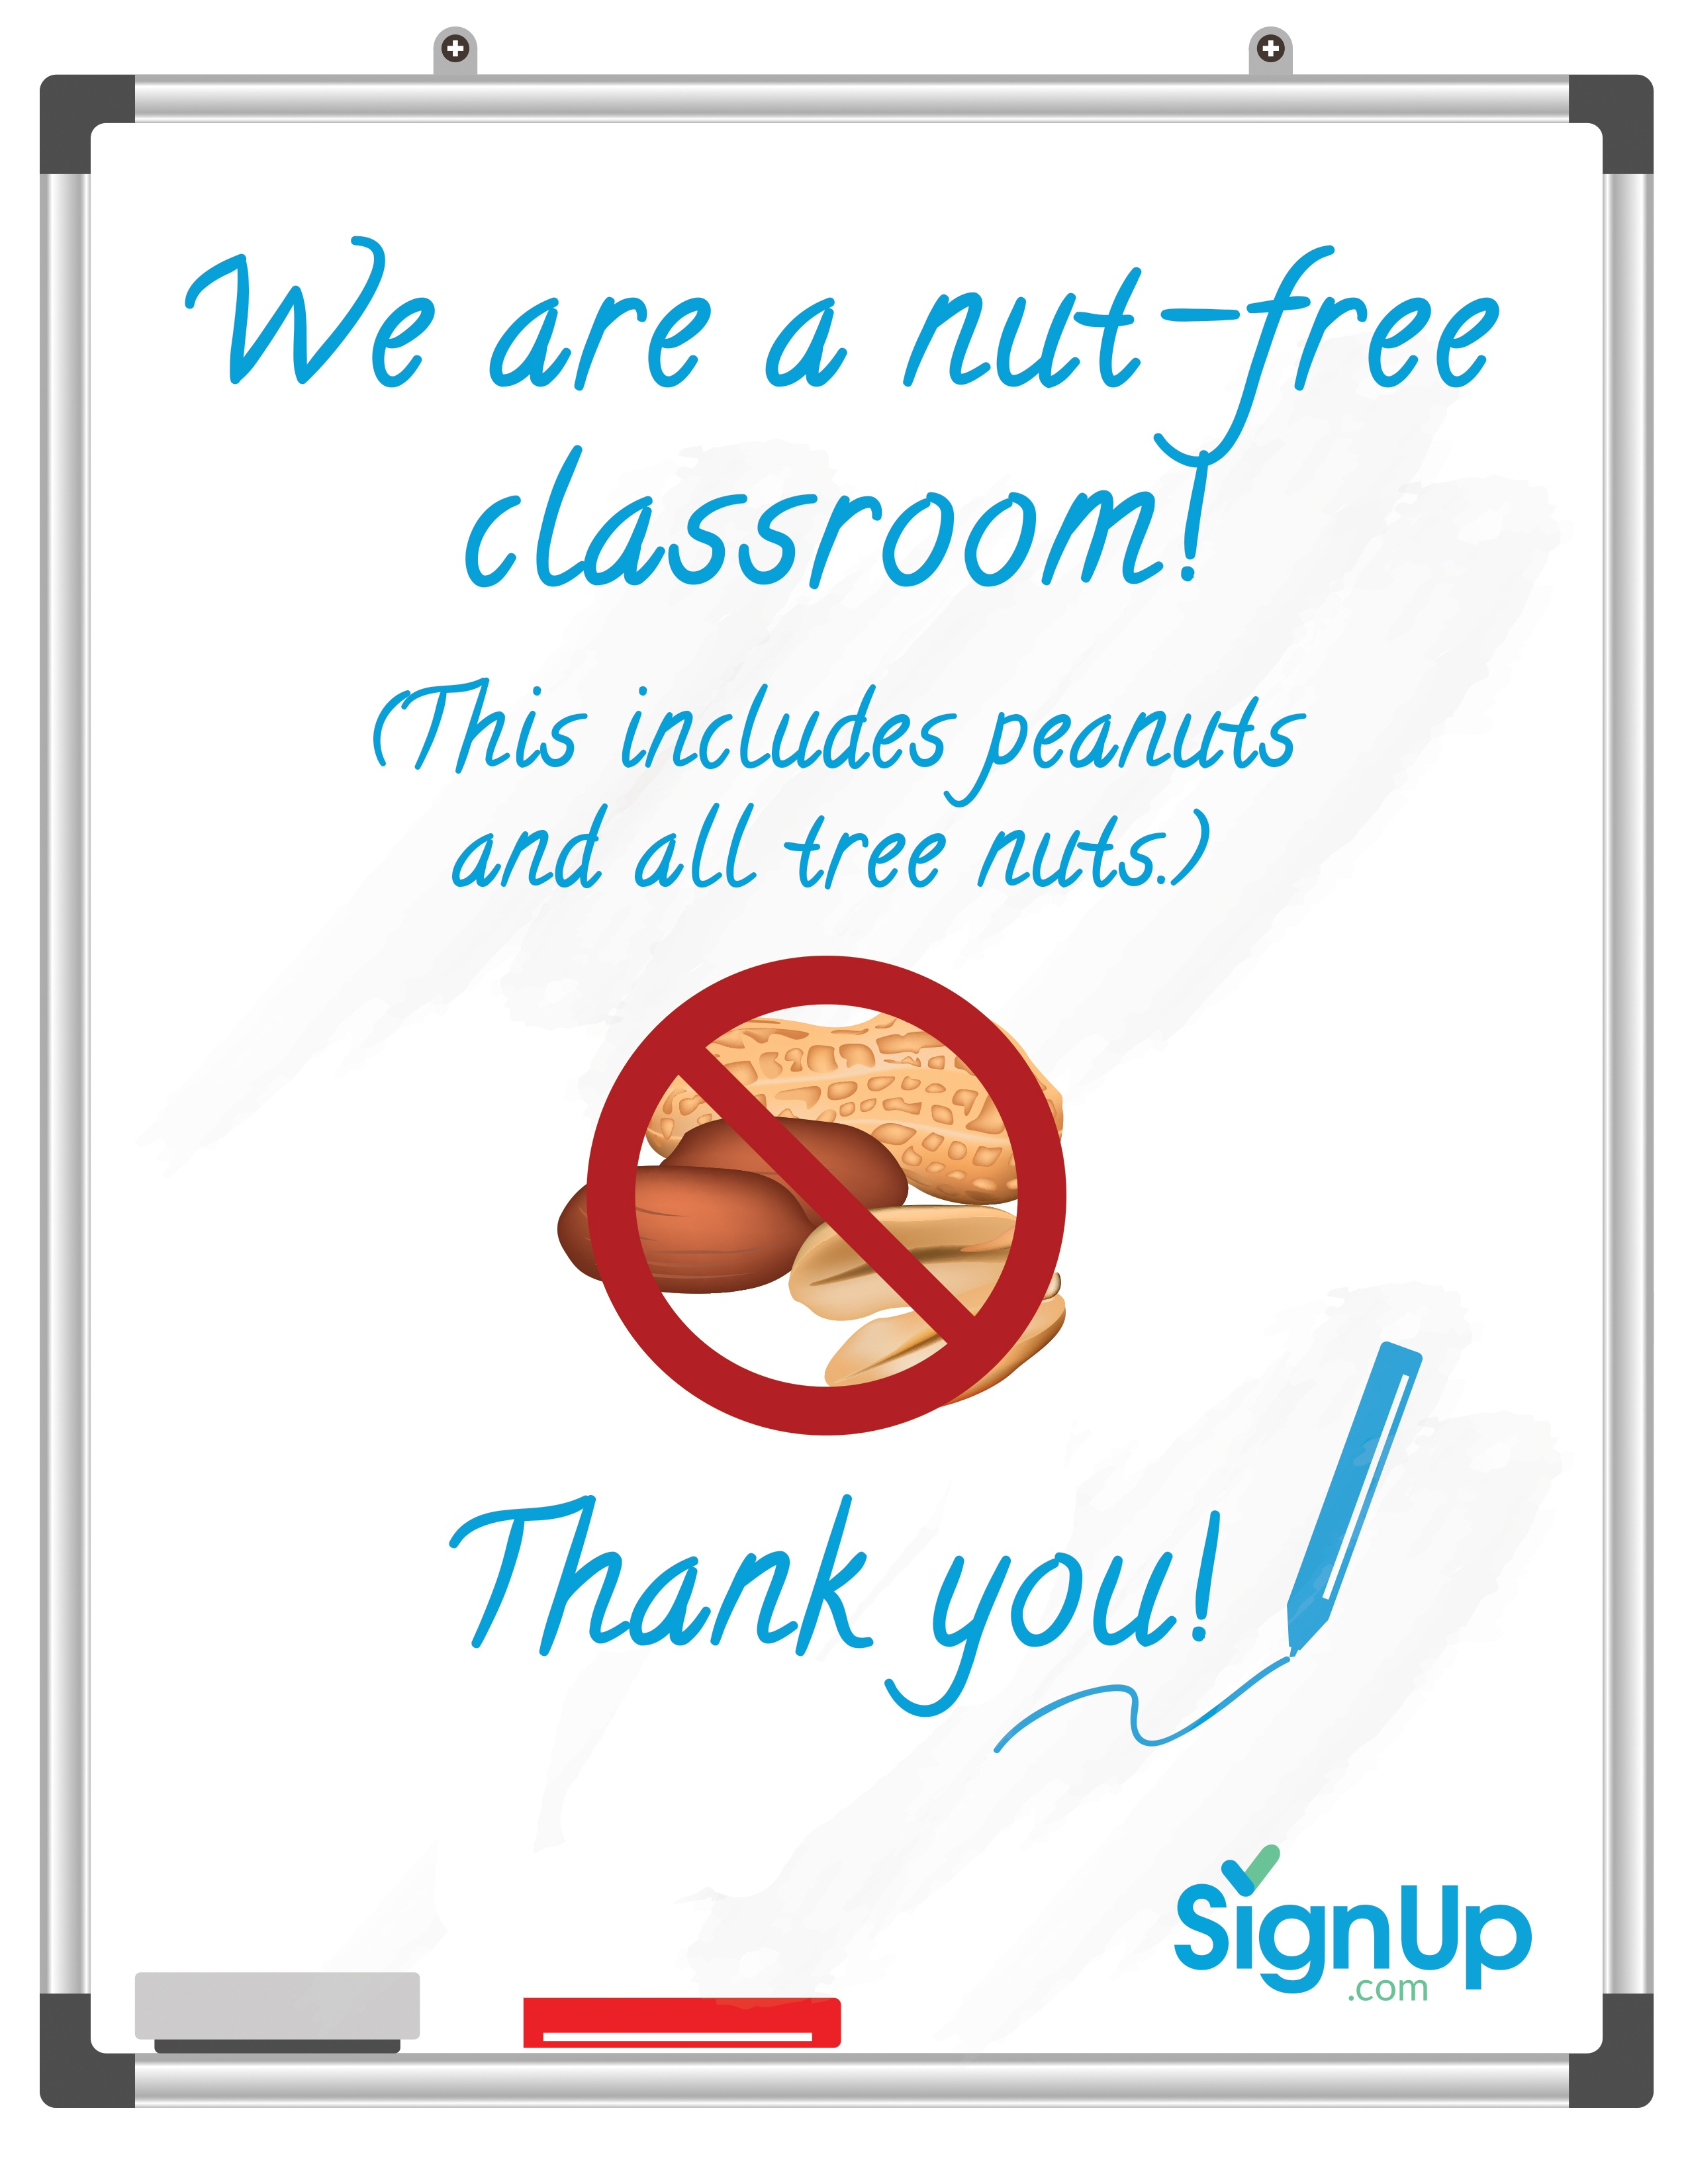 Free Printable Classroom Signs   Signup - Printable Peanut Free Classroom Signs